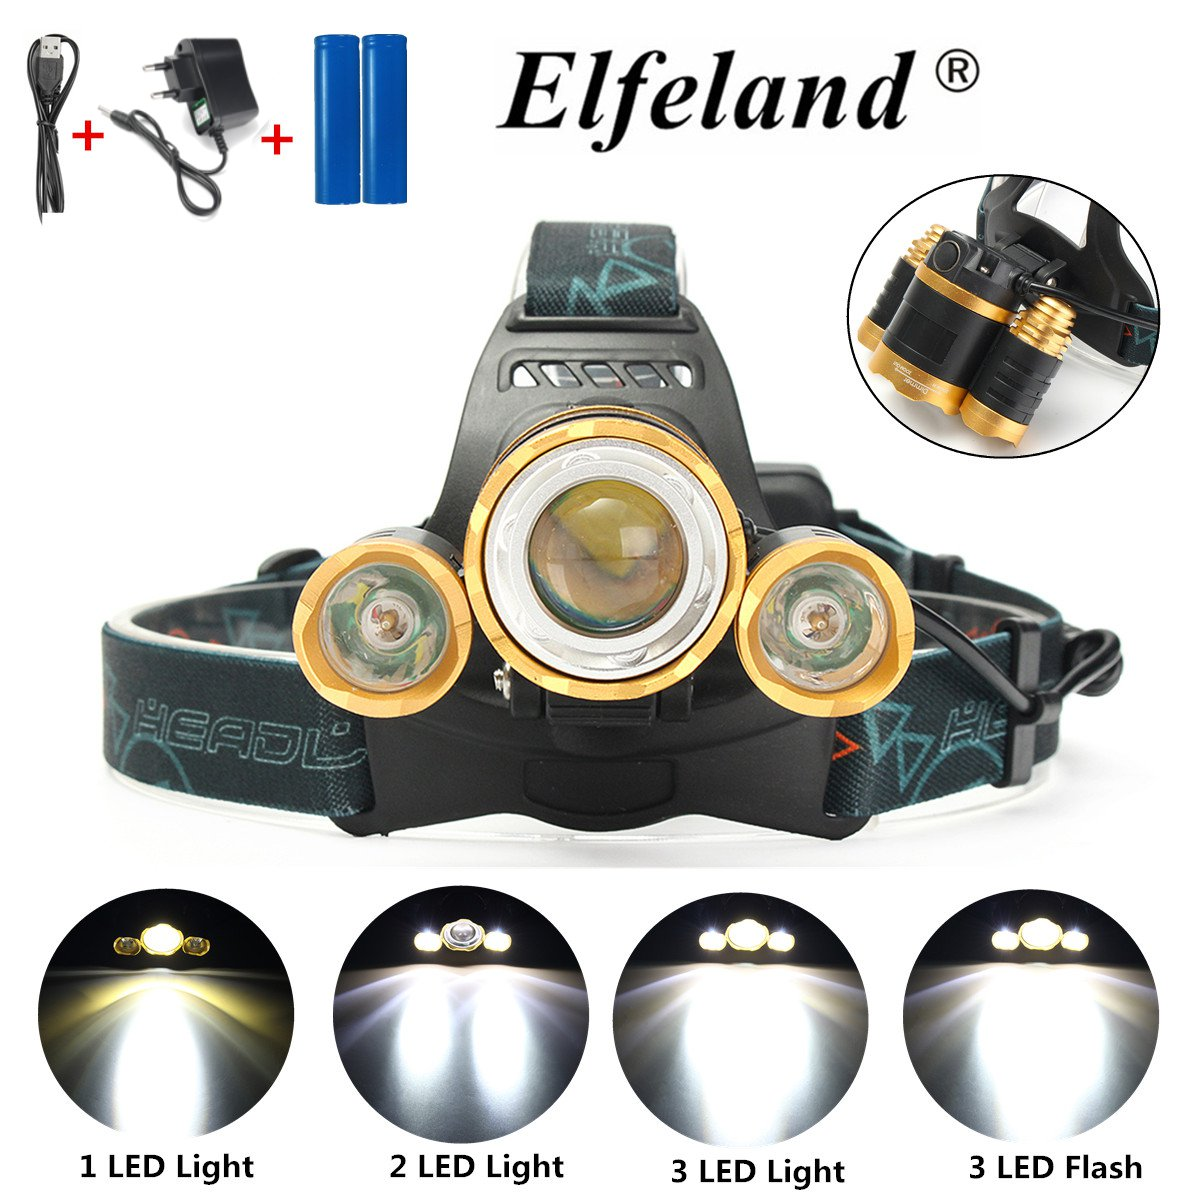 5000LM 3x T6 LED Zoomable Rechargeable Headlight Headlamp Head chargersampampampadapter Lantern Lamp Torch + 2Pcs 18650 Battery + AC Chargering Plug For Camping Fishing